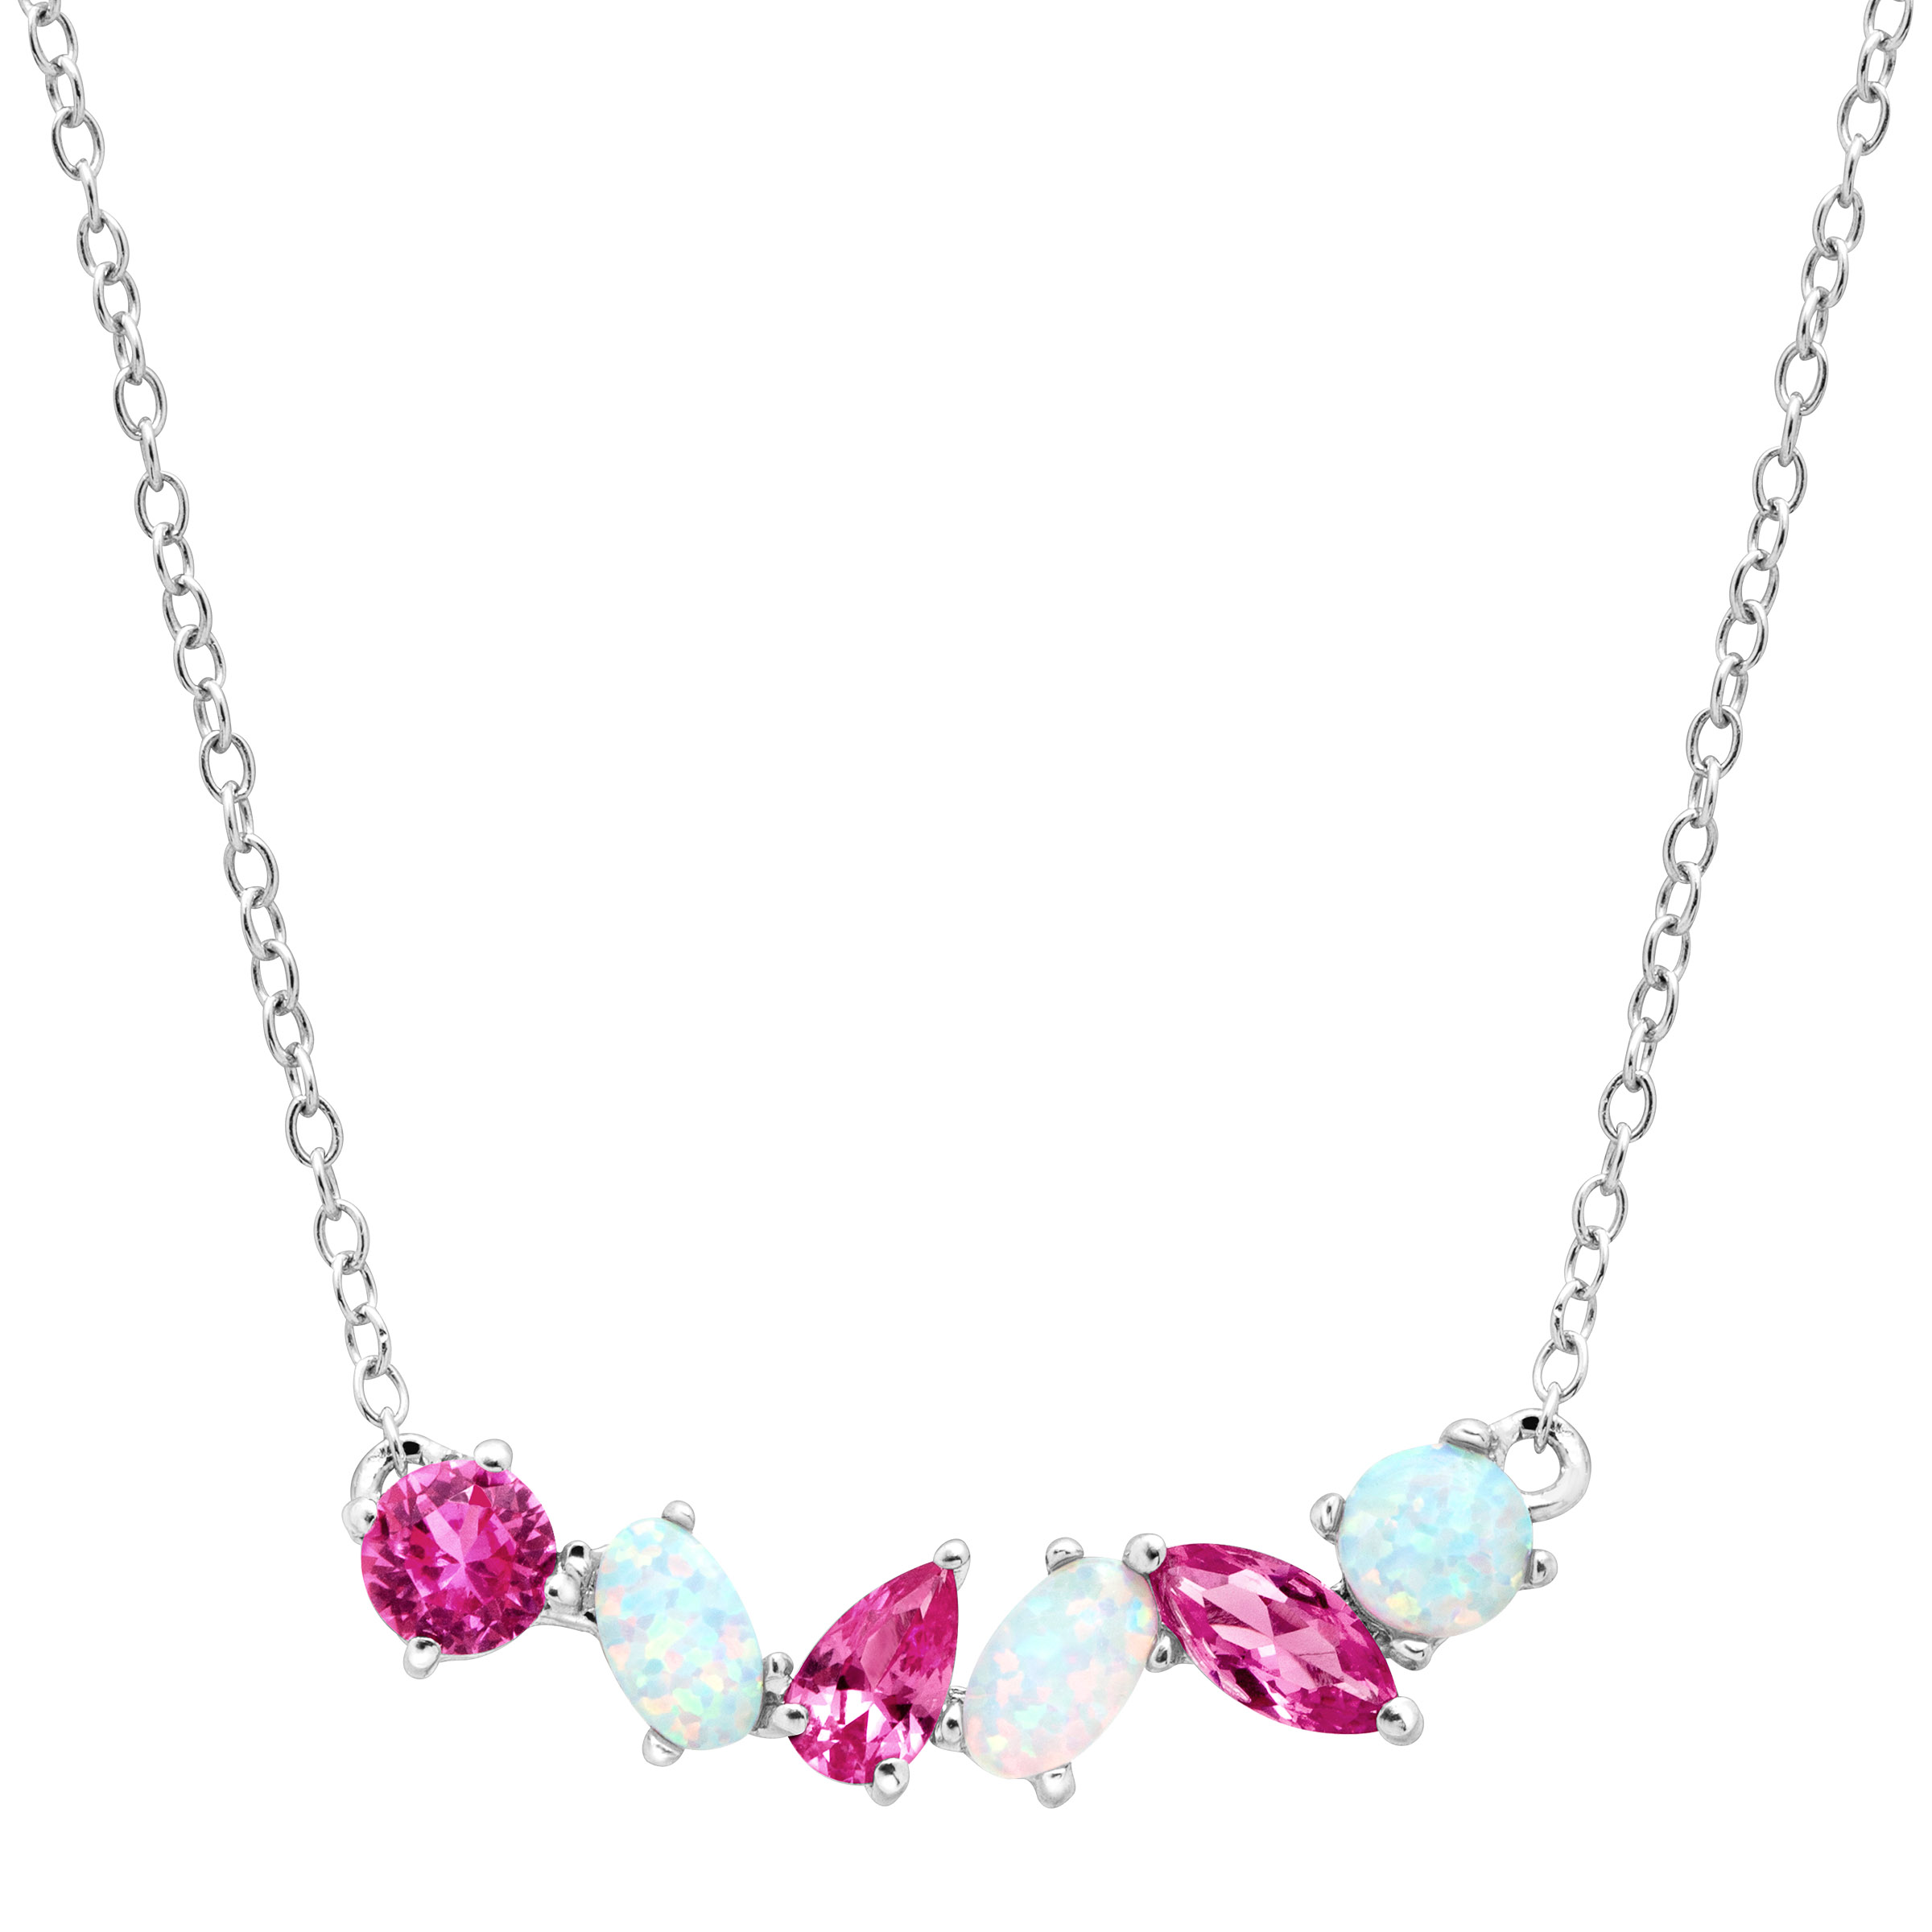 1 ct Created Pink Sapphire & Opal Garland Necklace in Sterling Silver by Richline Group